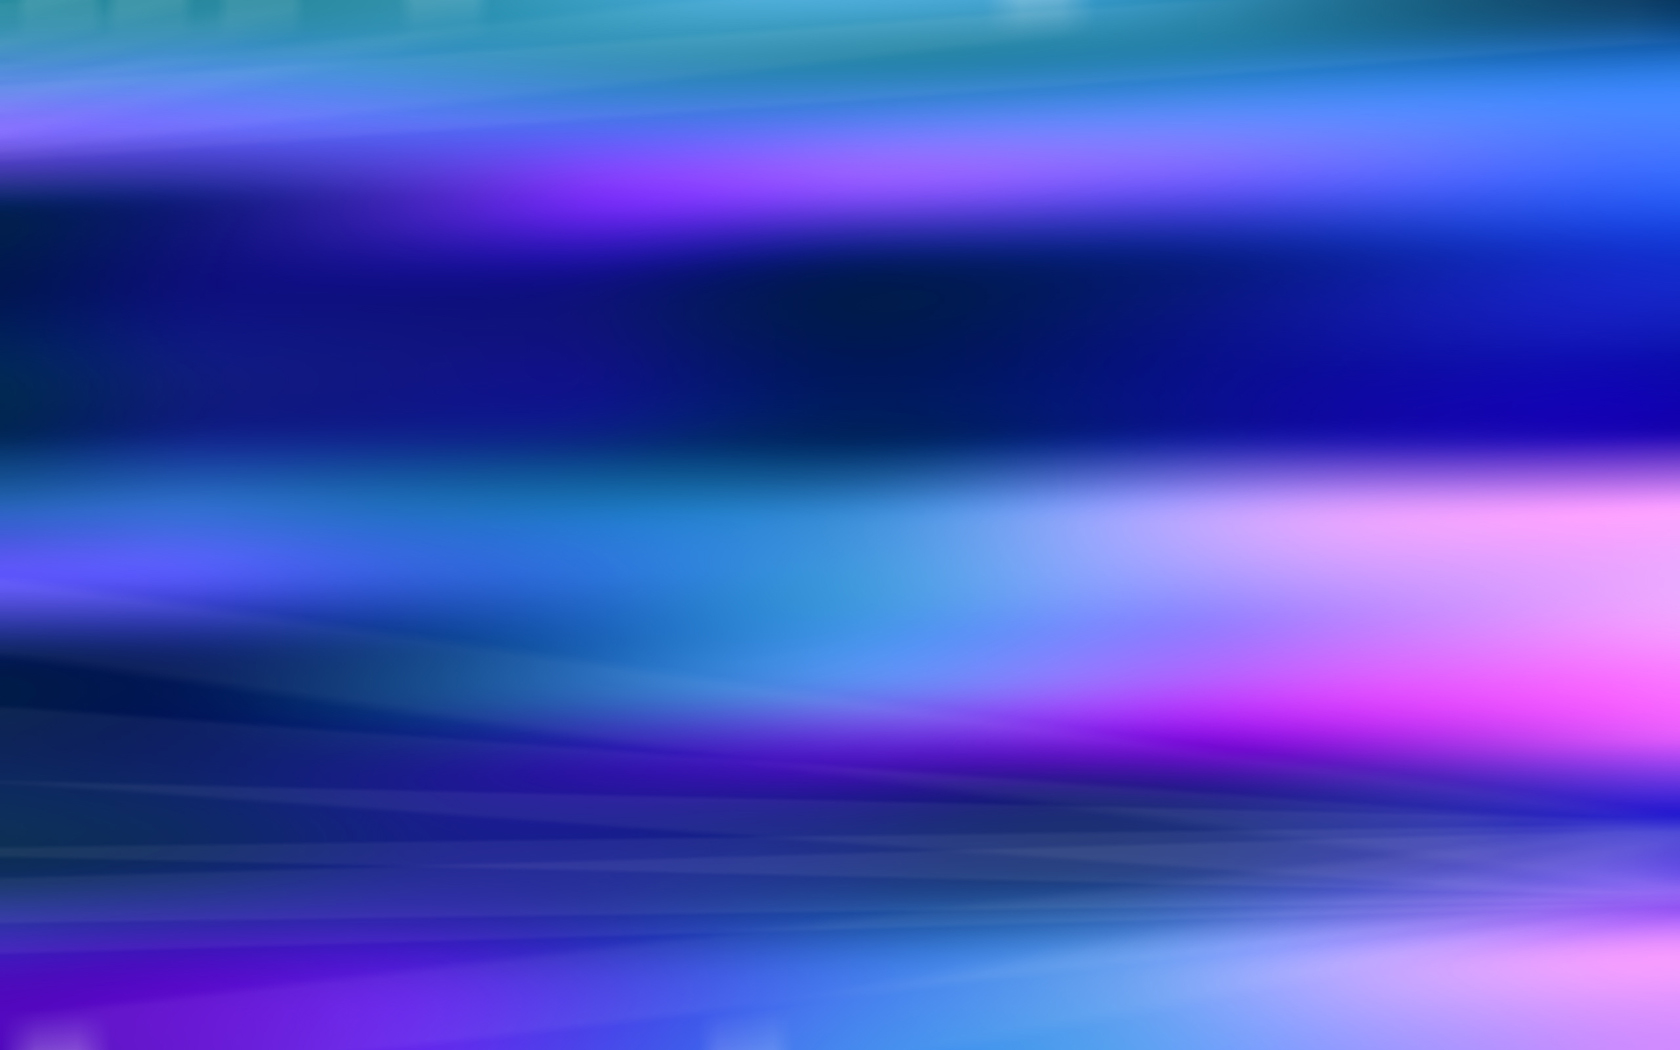 Neon Purple wallpaper   ForWallpapercom 1680x1050